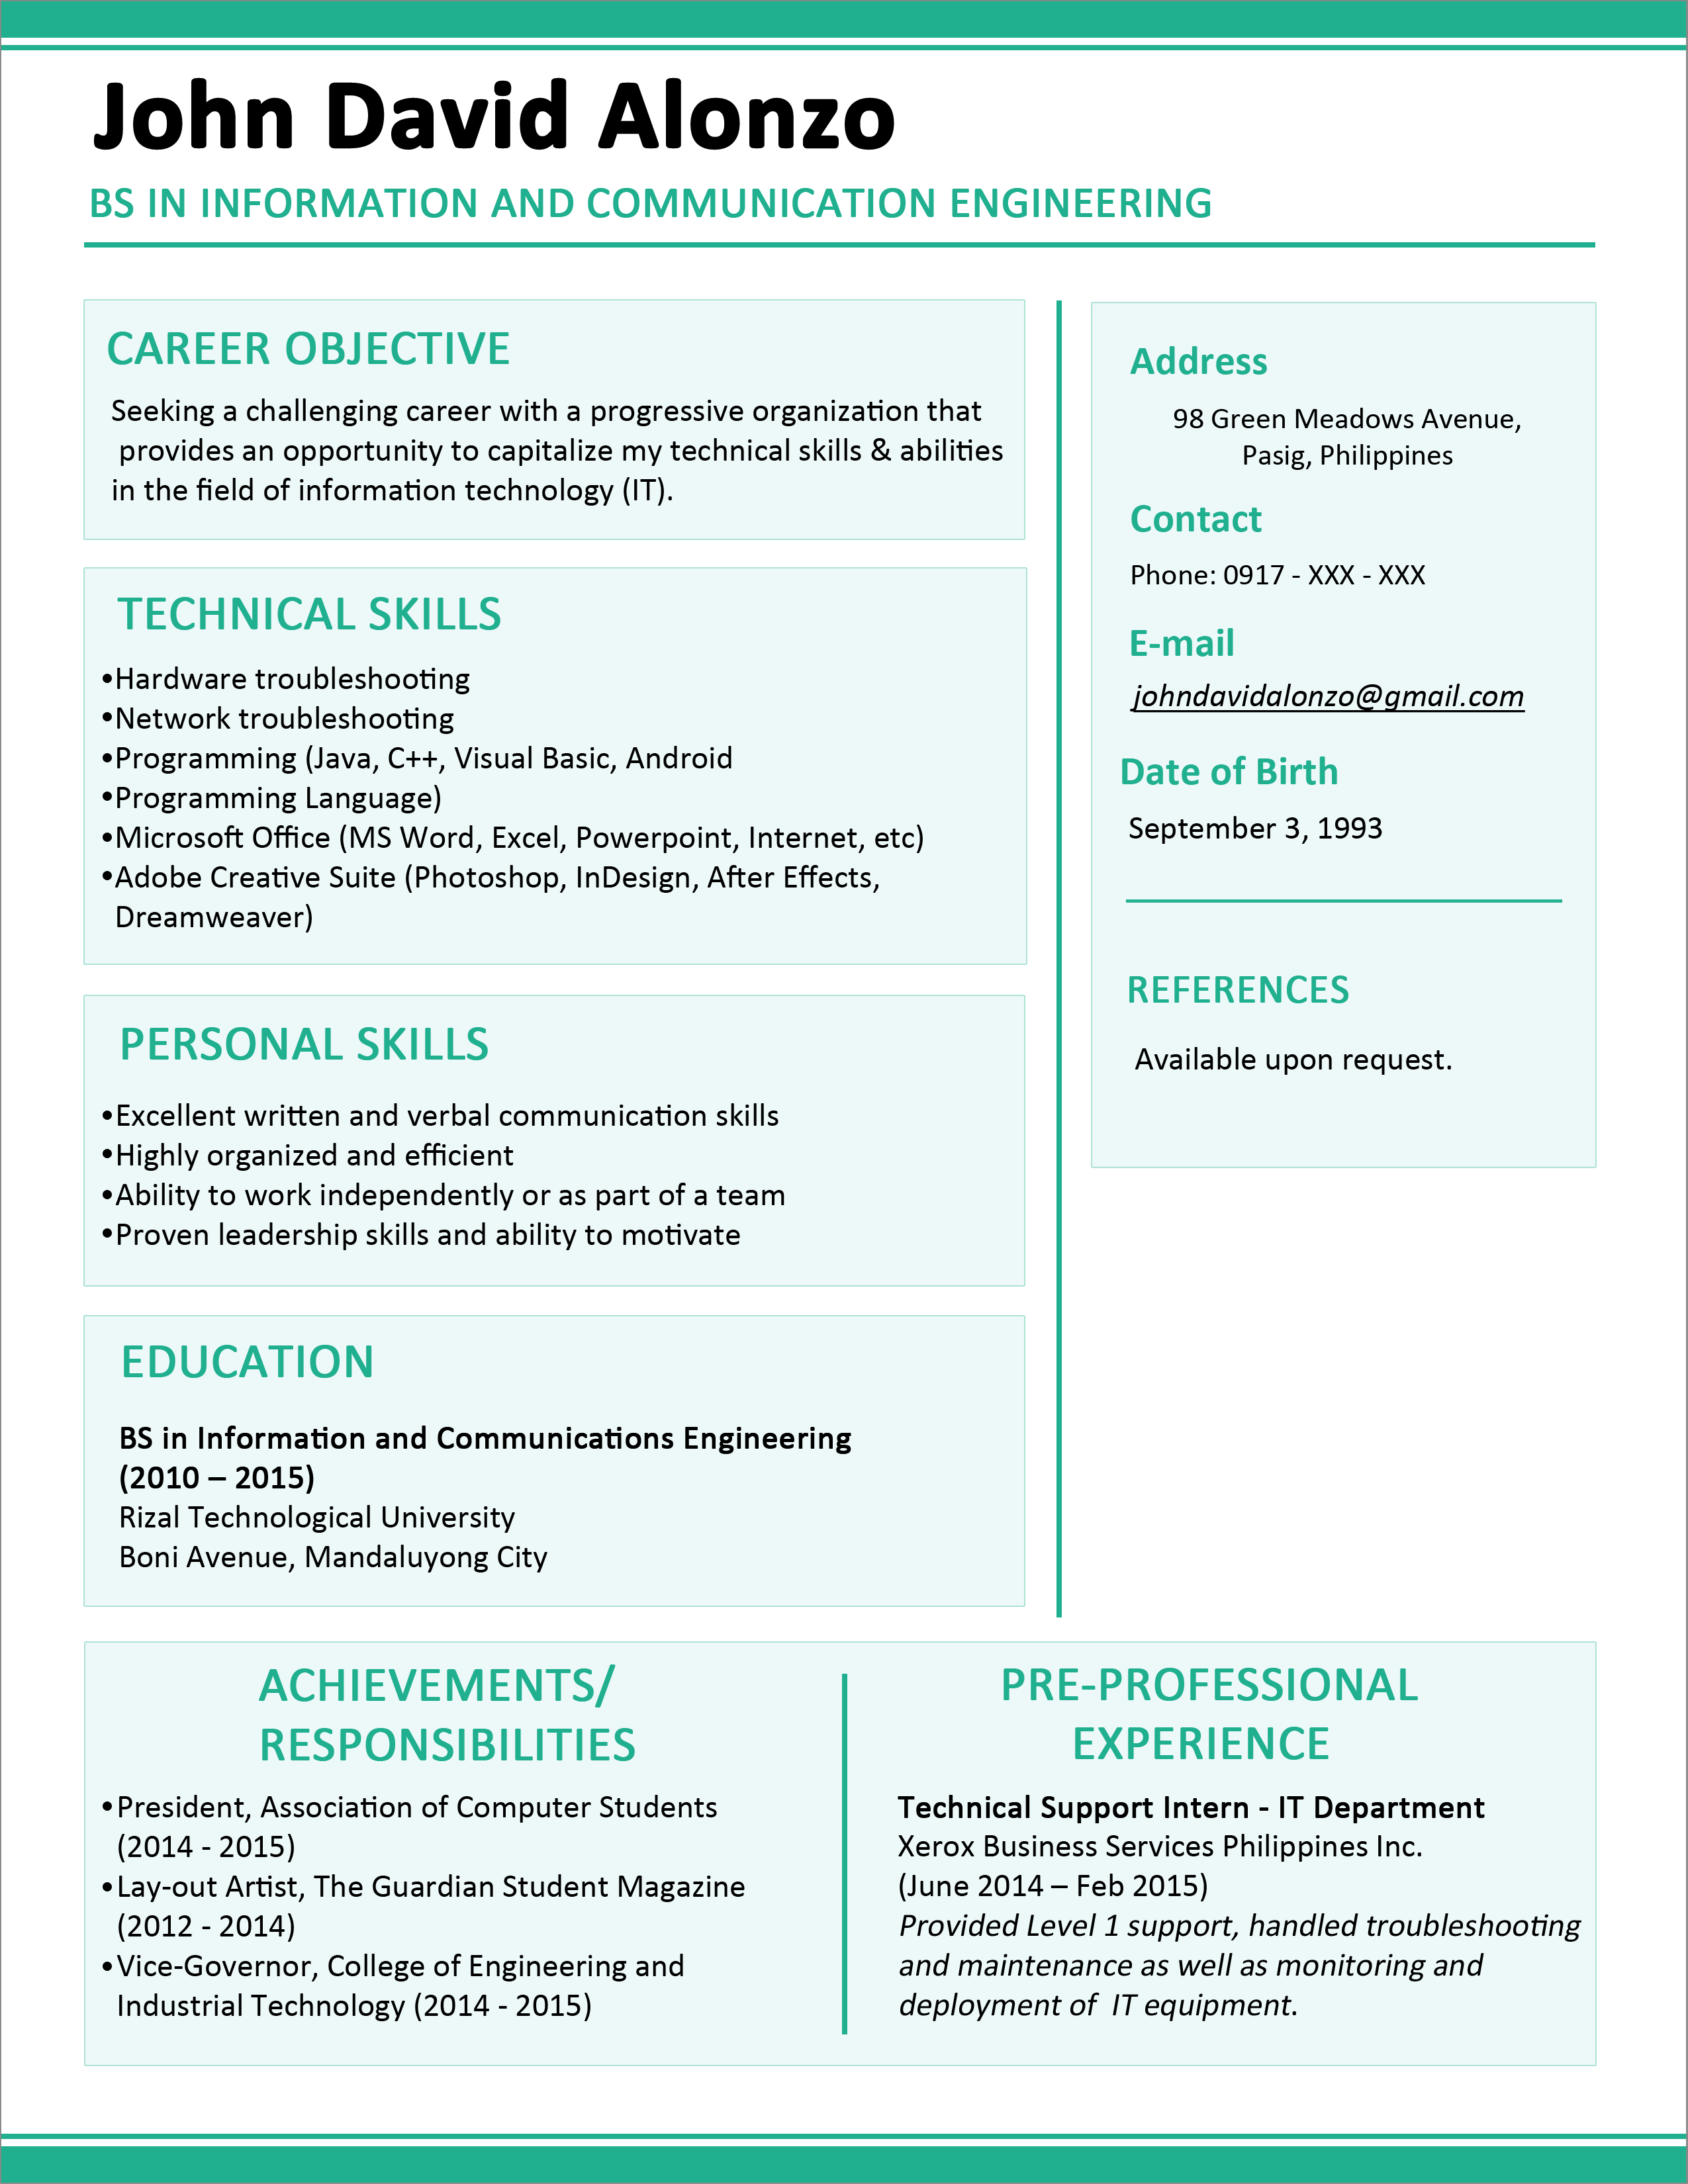 formats resume for fresh graduates call center samples cover letter work experience template